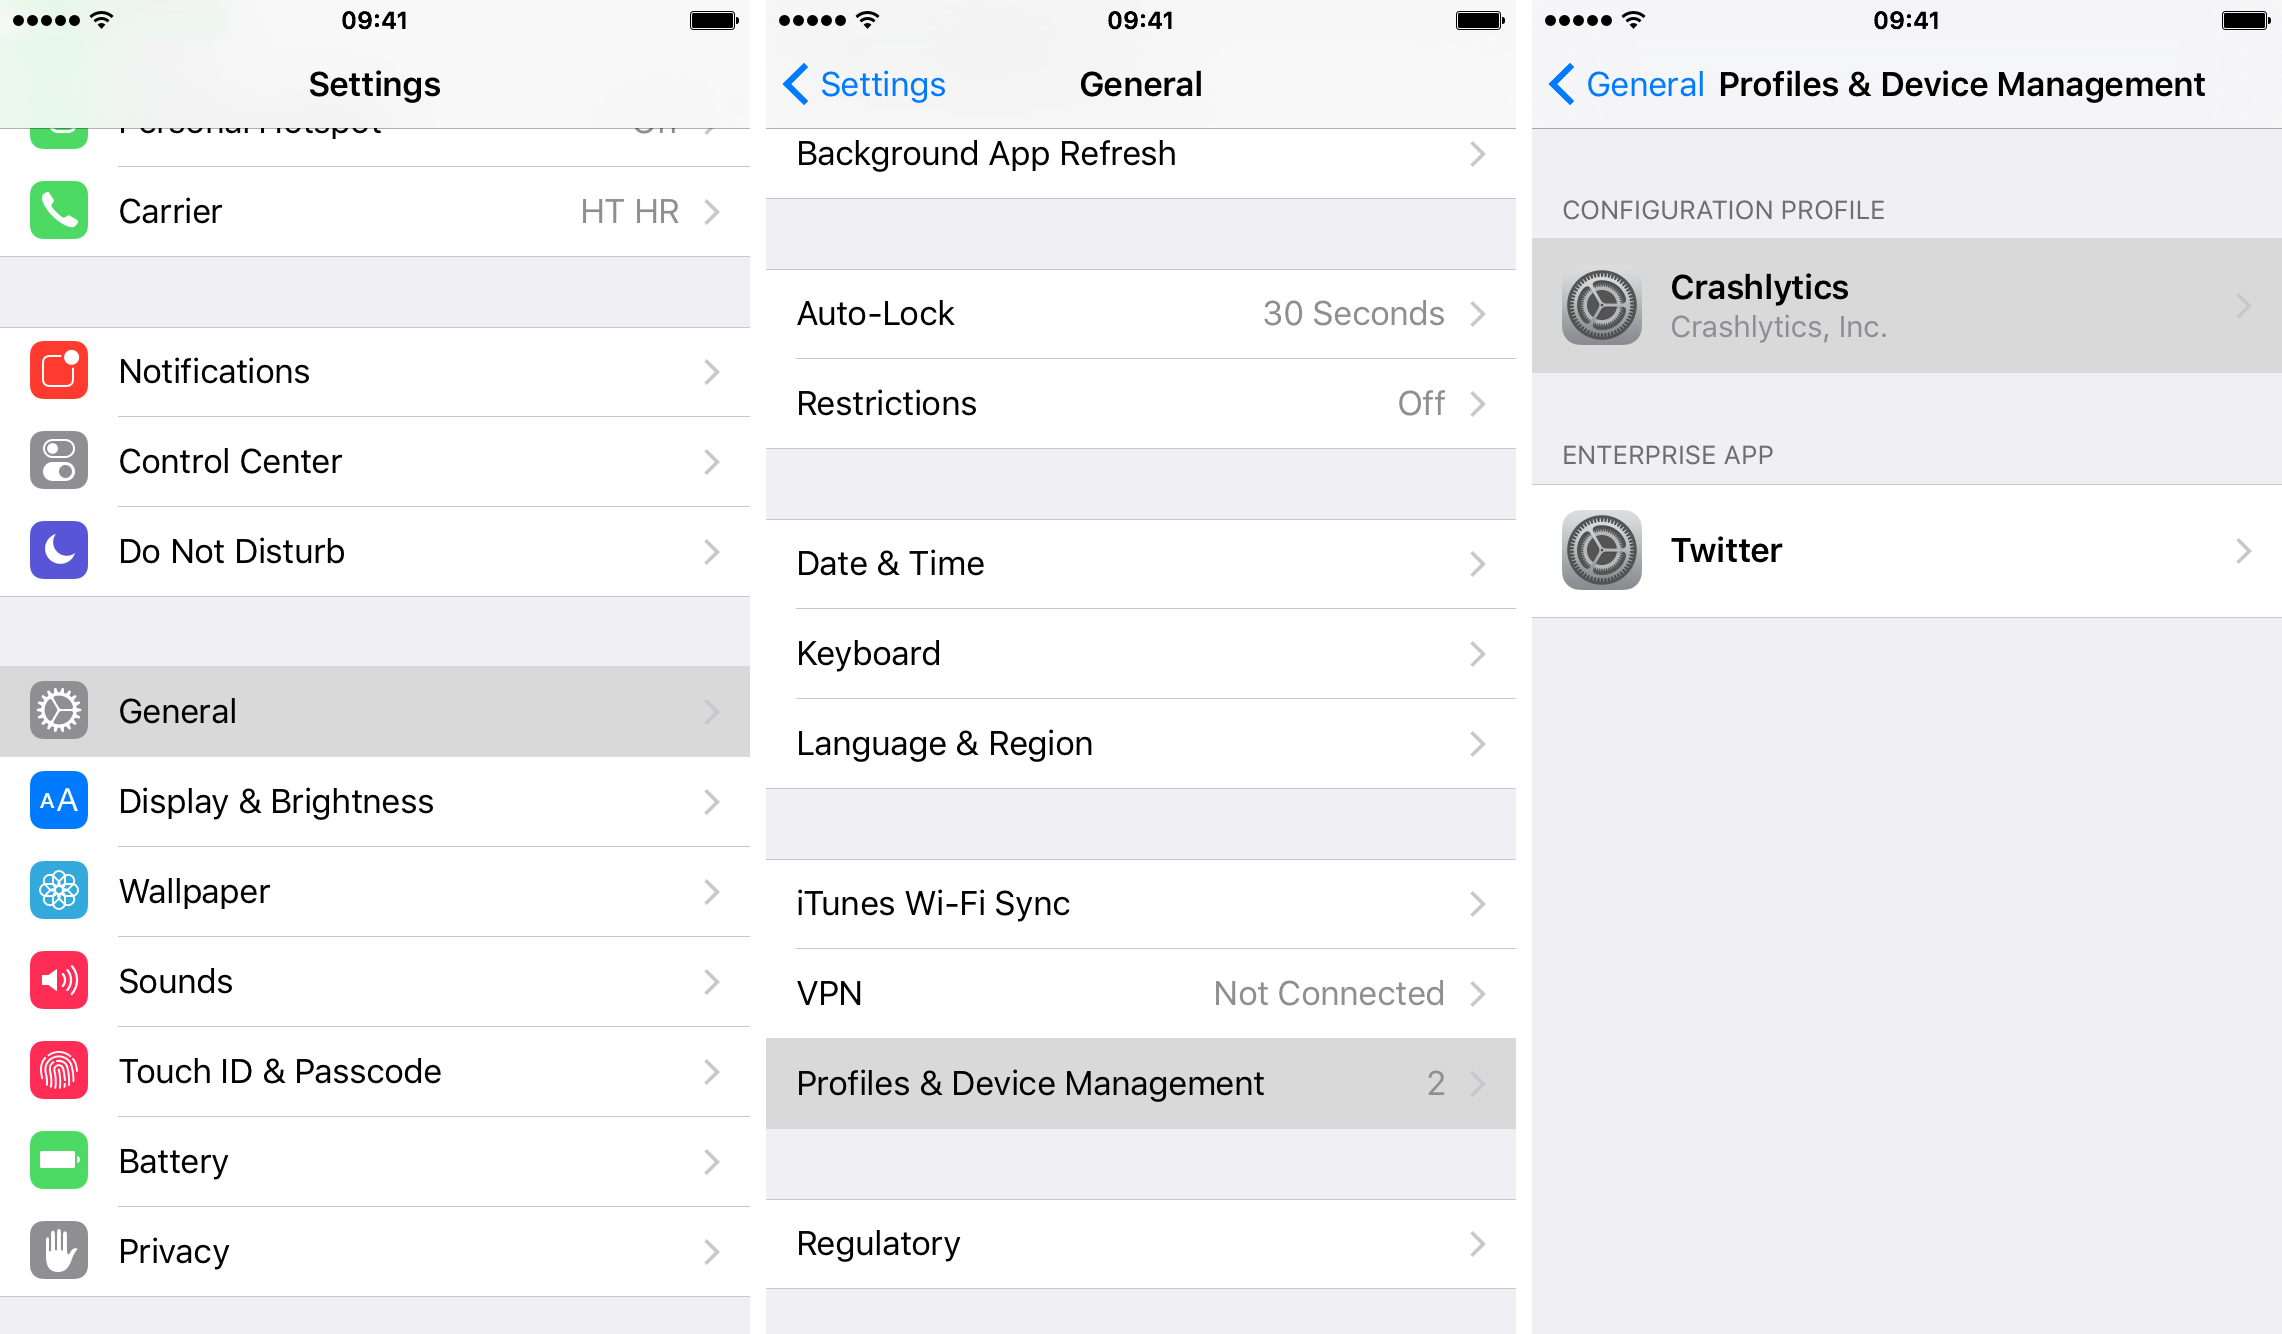 How To: Remove Network Configuration Profile on iPhone/iPad